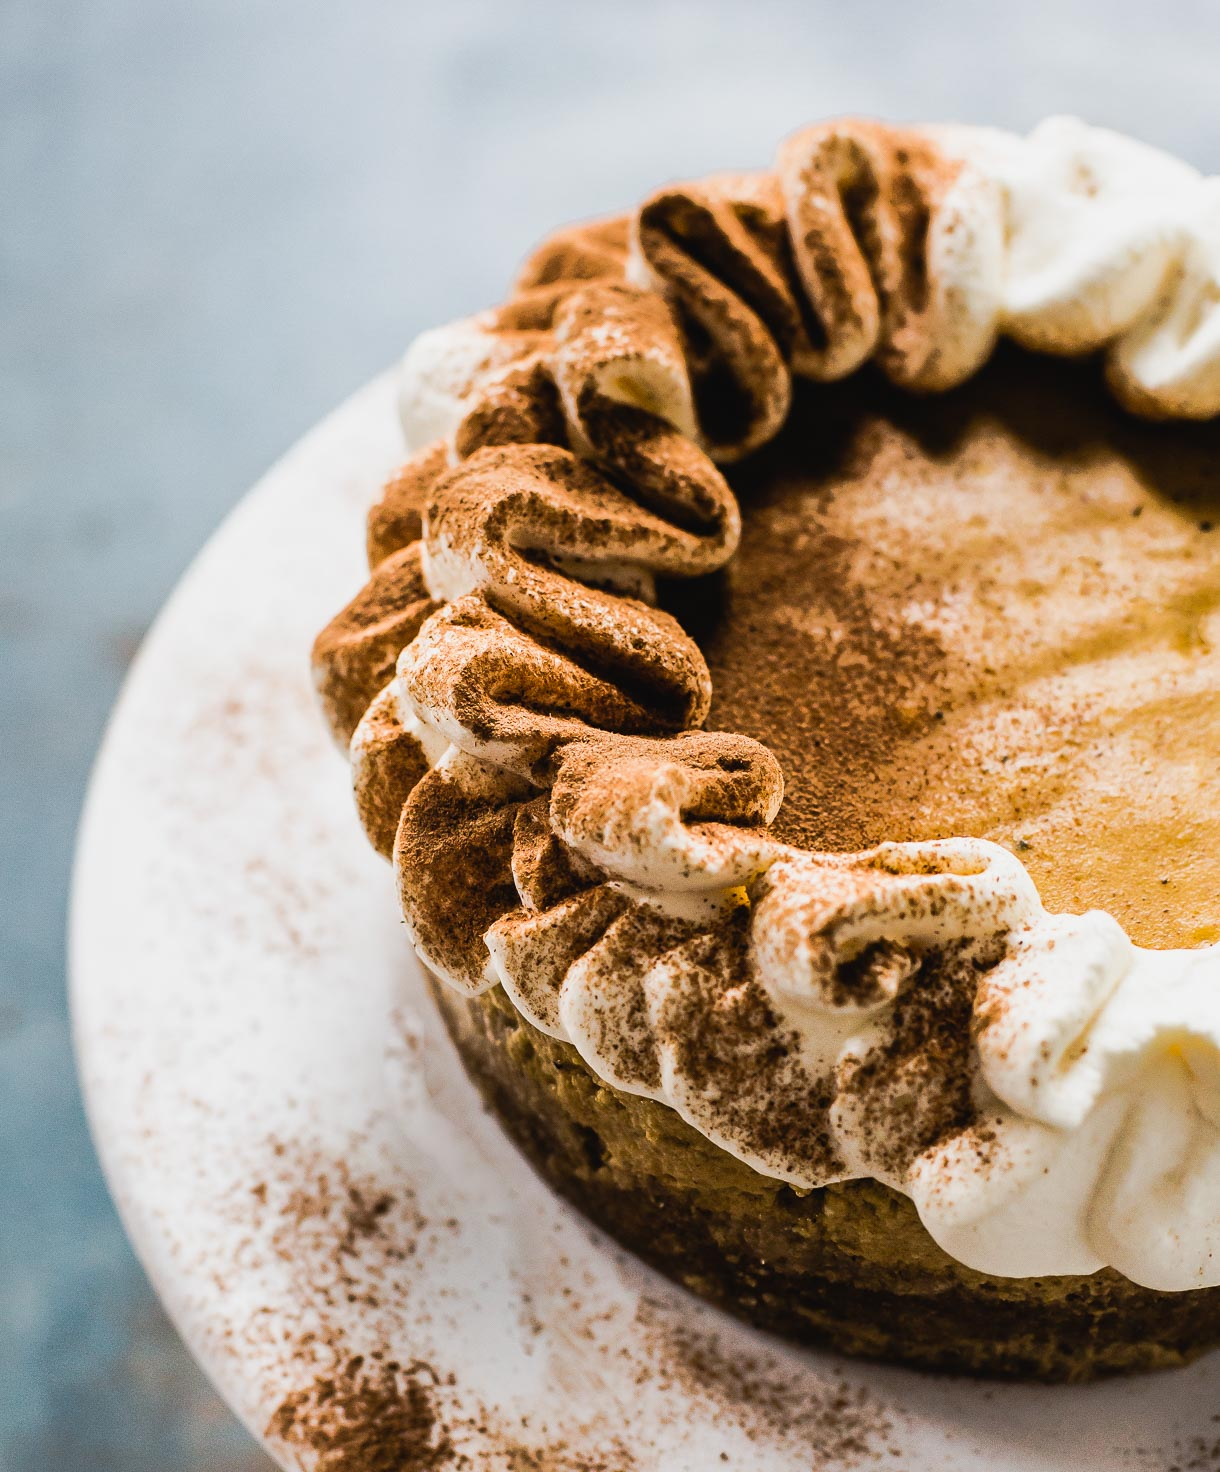 Instant Pot Cardamom Pumpkin Cheesecake from Heartbeet Kitchen